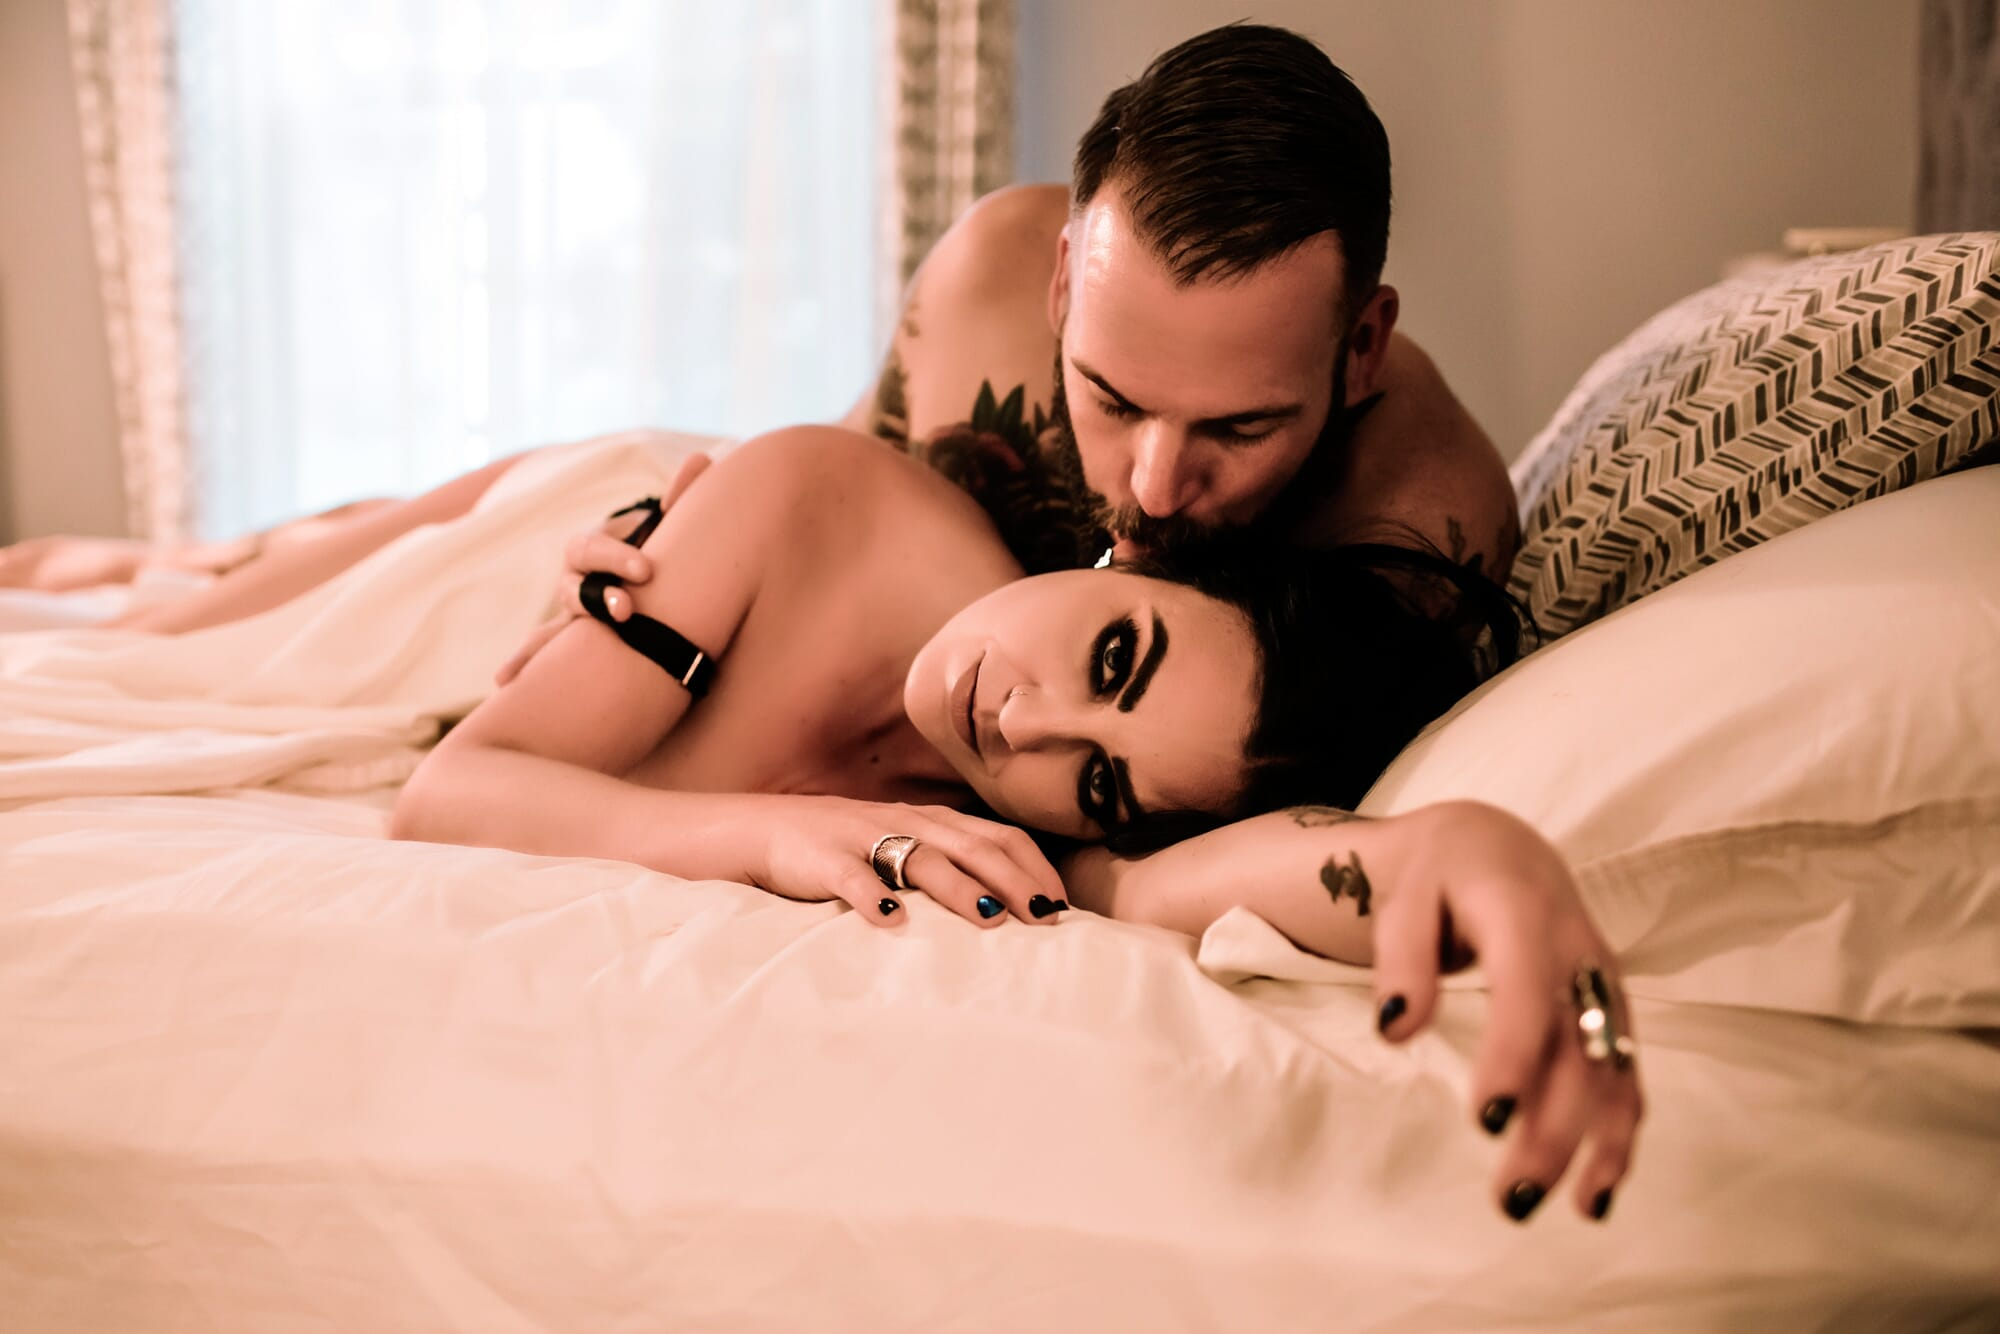 boudoir, sale, flash sale, merica, patriotic, veteran, couples boudoir, couples session, intimate session, relationship goals, intimacy, couples therapy, spice up your sexy life, christmas sale, gift, anniversary gift, gift for her, gift for him